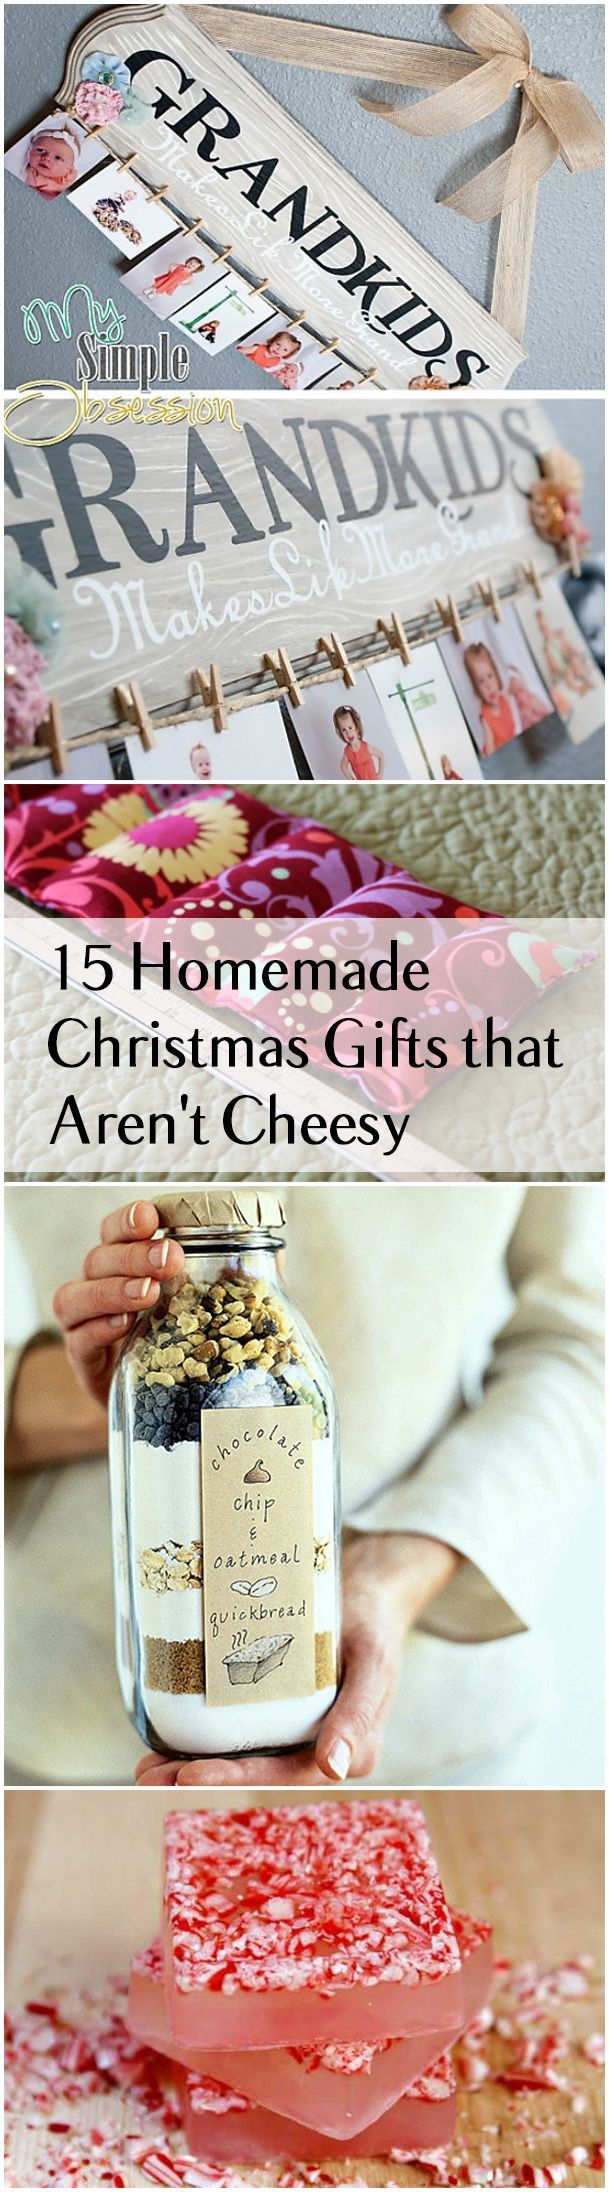 15 homemade christmas gifts that arent cheesy homemade homemade christmas gifts and ideas that are thoughtful inexpensive and easy solutioingenieria Image collections